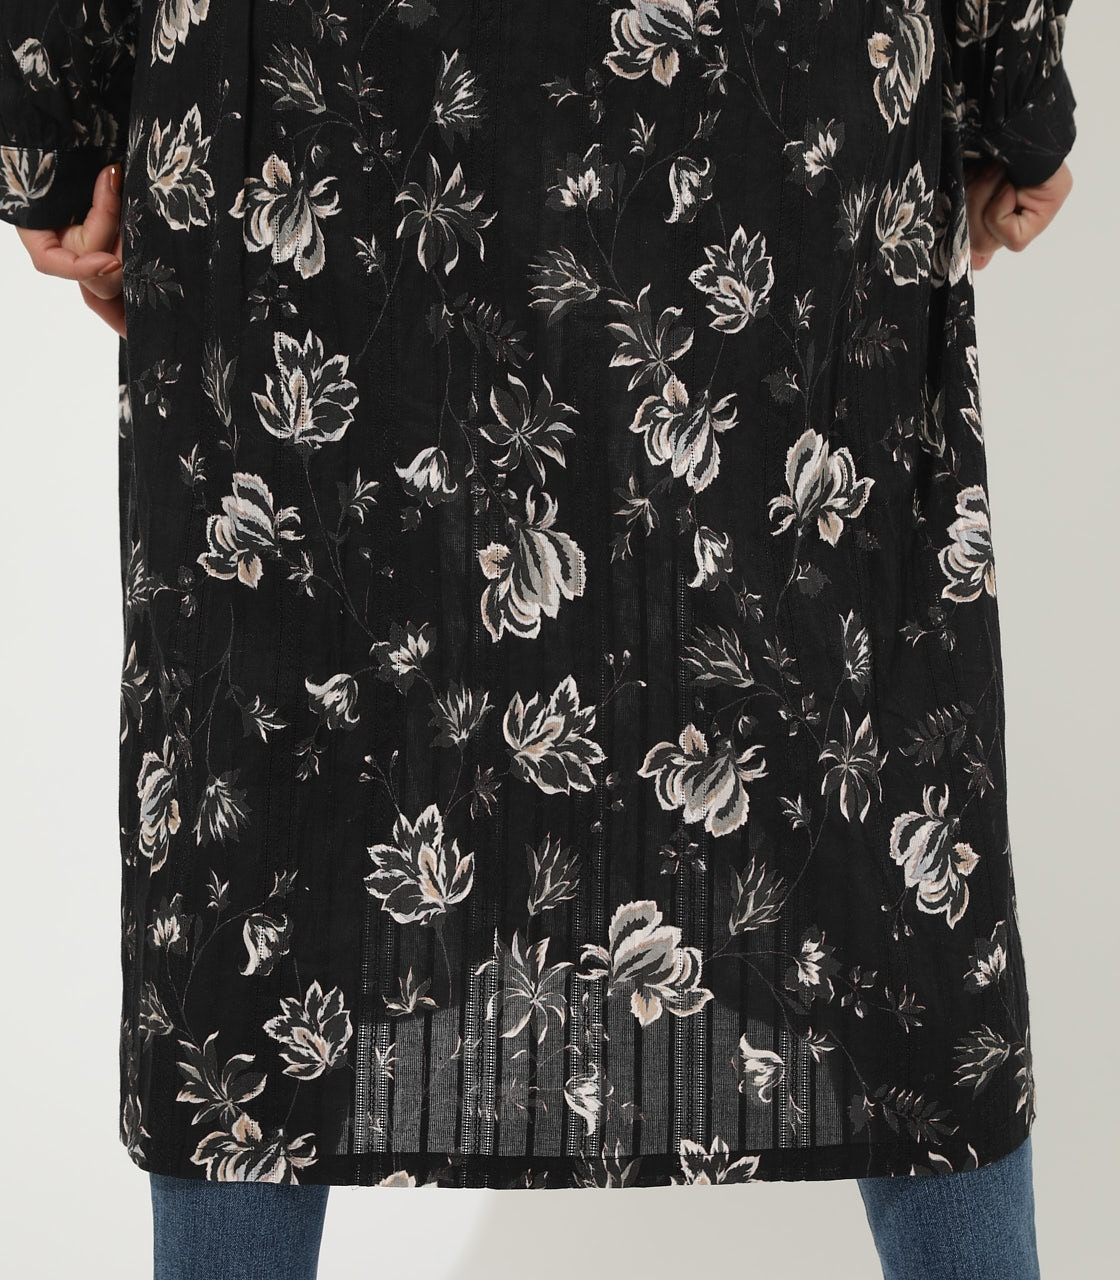 【AZUL BY MOUSSY】FLOWER GOWN 詳細画像 柄BLK 9